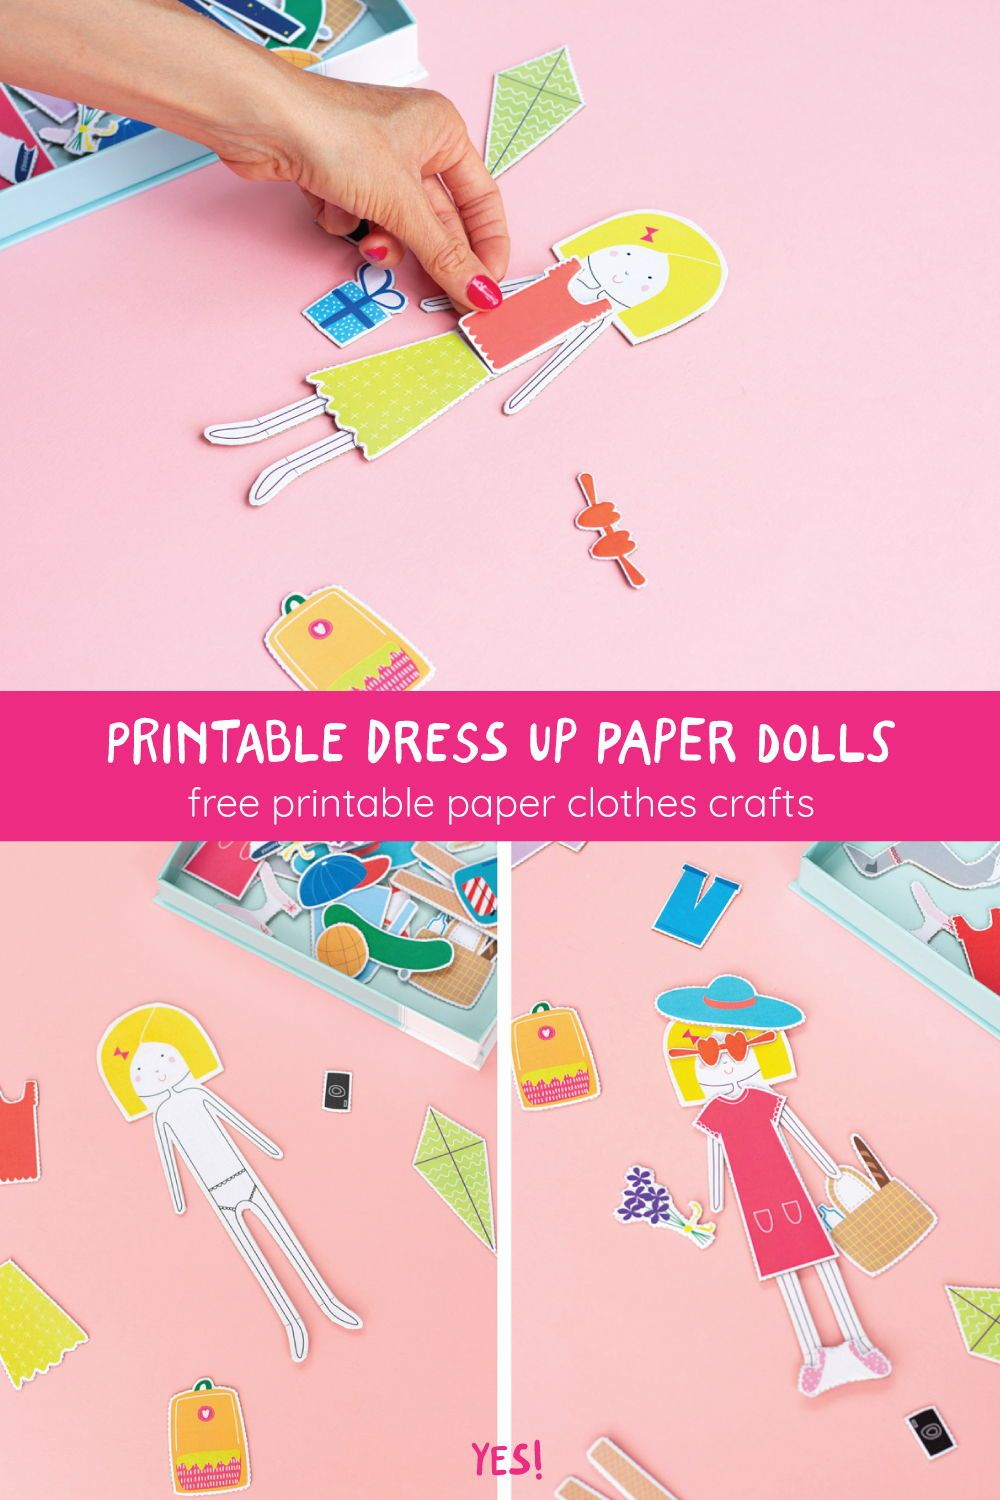 14 dress DIY free printable ideas